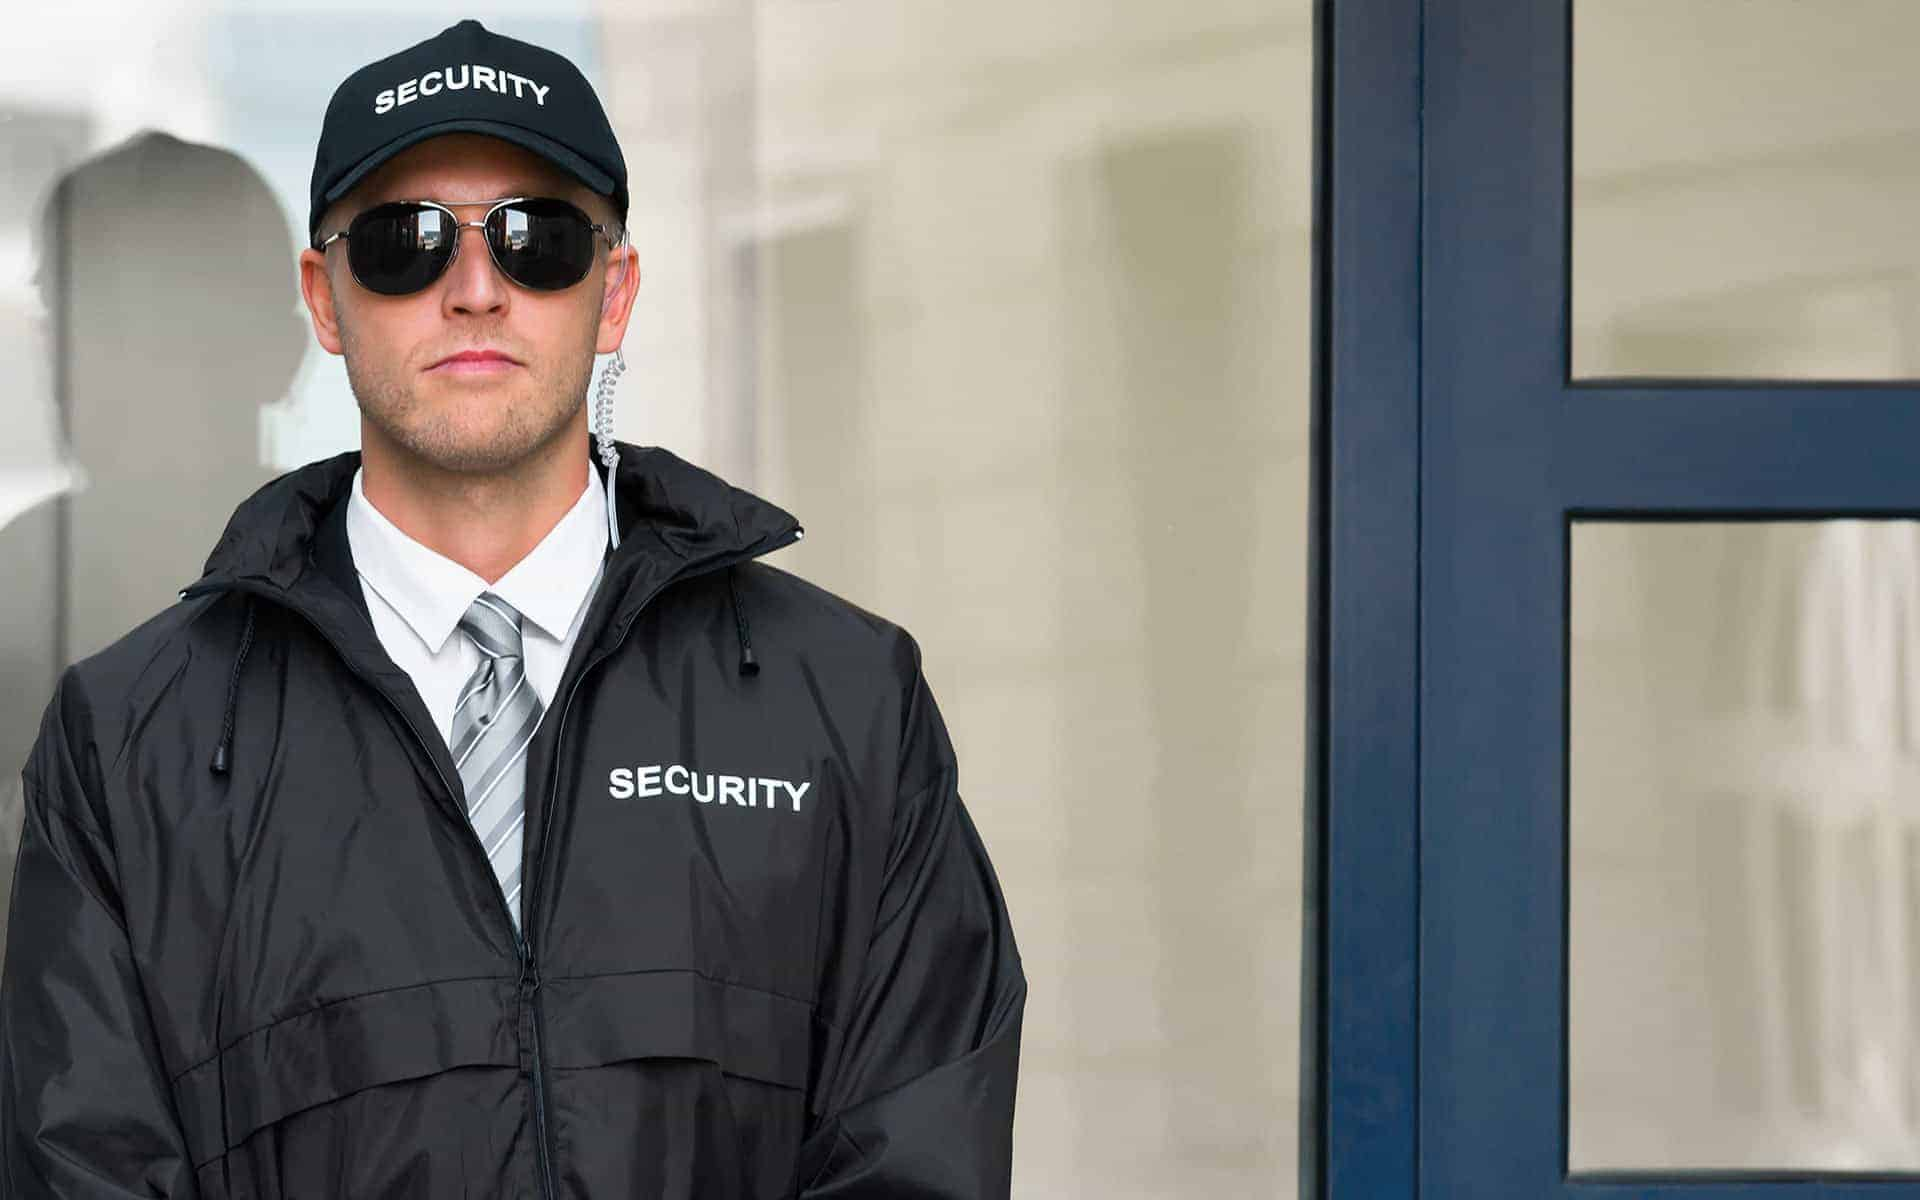 Security Guard Services NYC